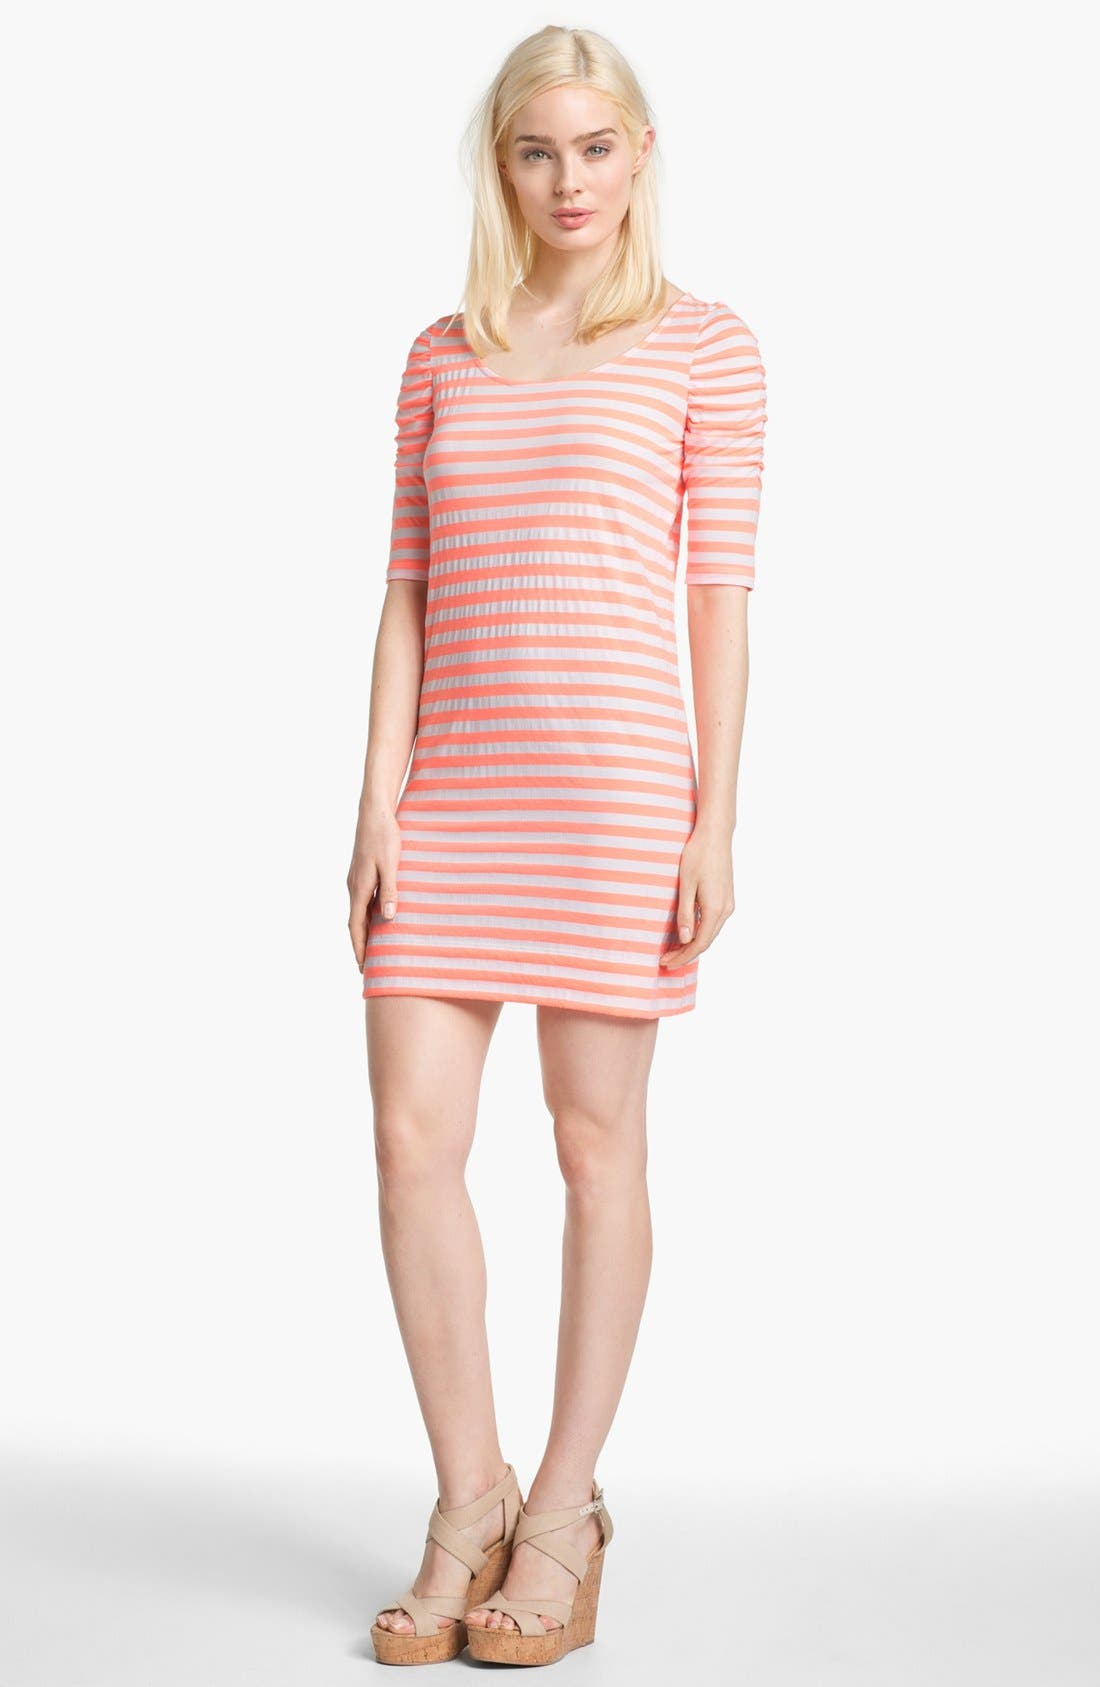 Alternate Image 1 Selected - Lilly Pulitzer® 'Kaley' Stripe T-Shirt Dress